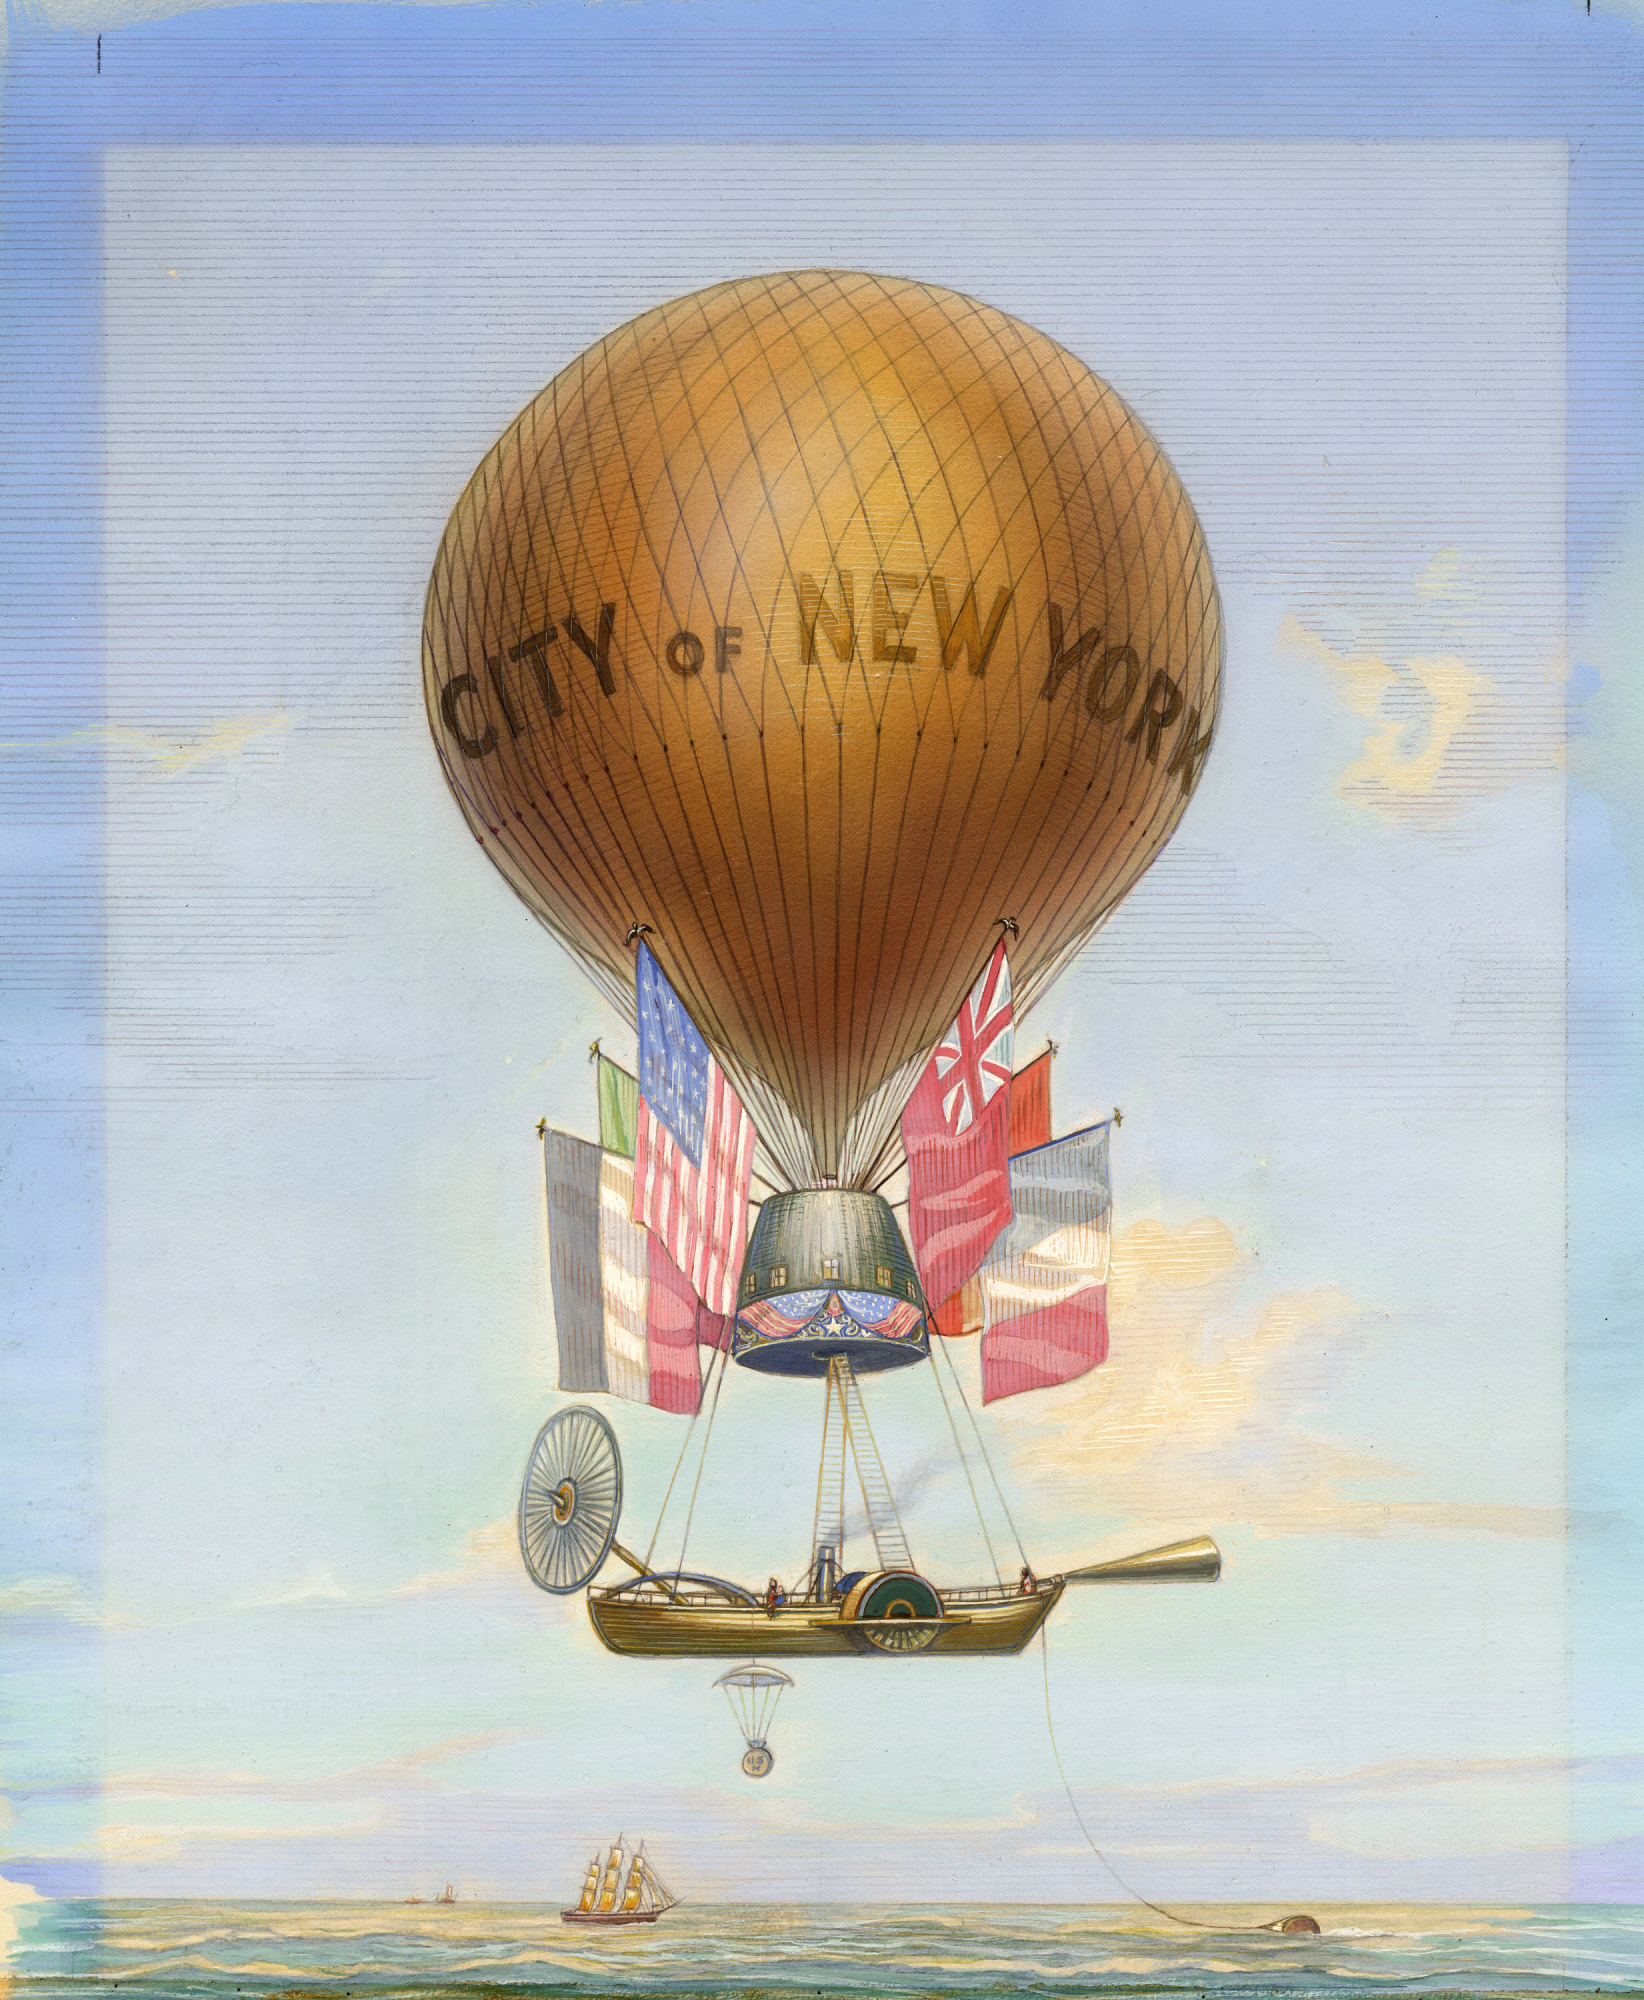 images for City of New York Balloon